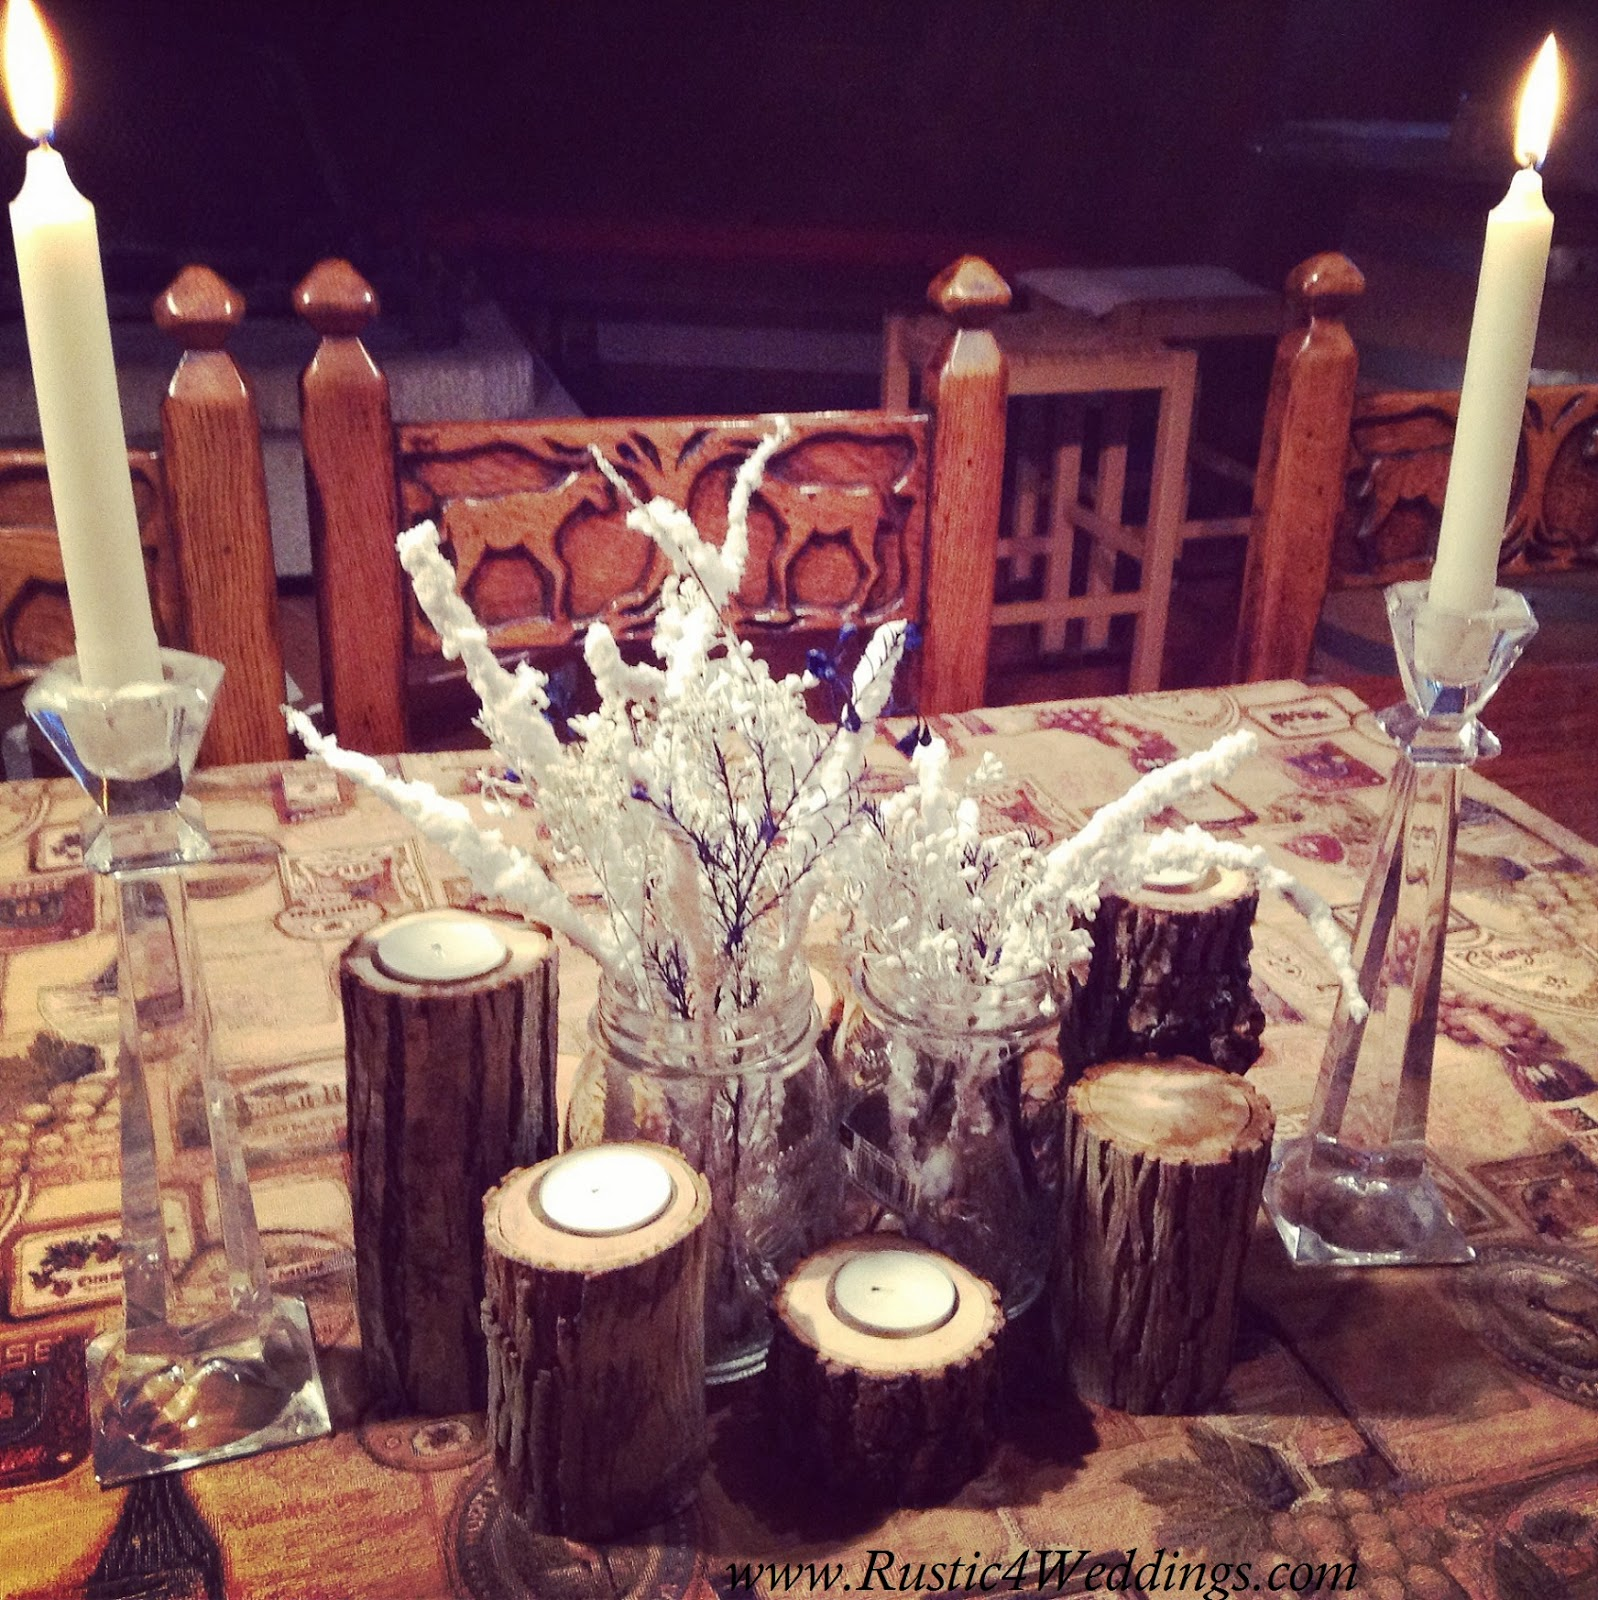 Rustic 4 Weddings Rustic Snack And Buffet Table Setting